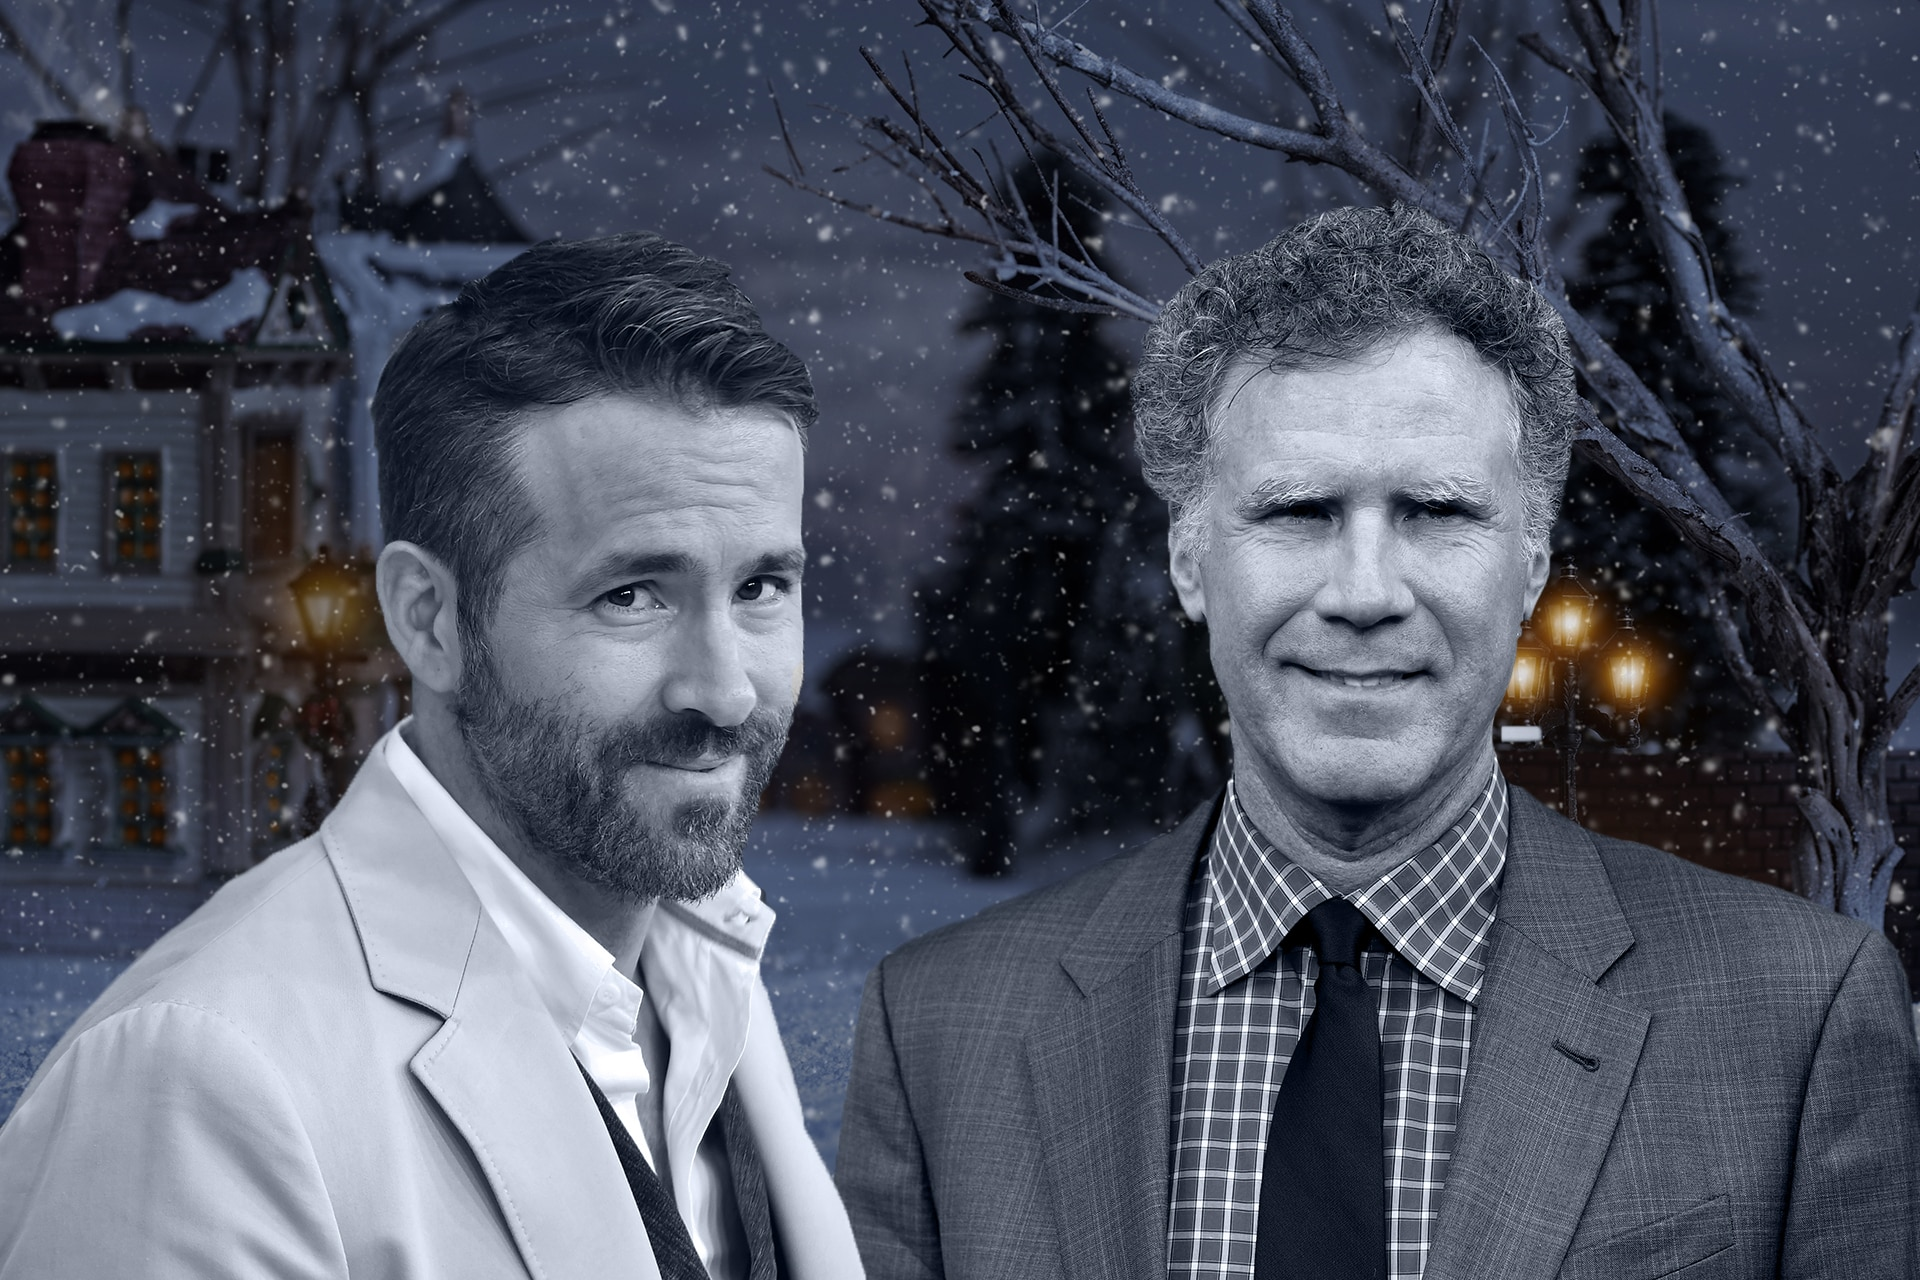 Will Ferrell Christmas Carol.Ryan Reynolds And Will Ferrell Are Apparently Starring In A